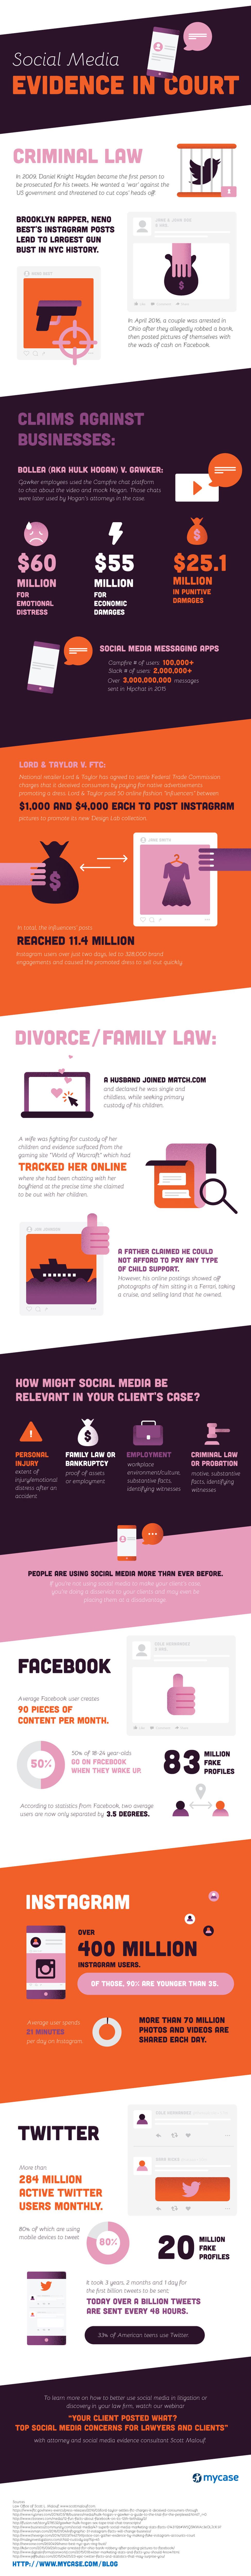 Social Media Evidence in a Court of Law infographic